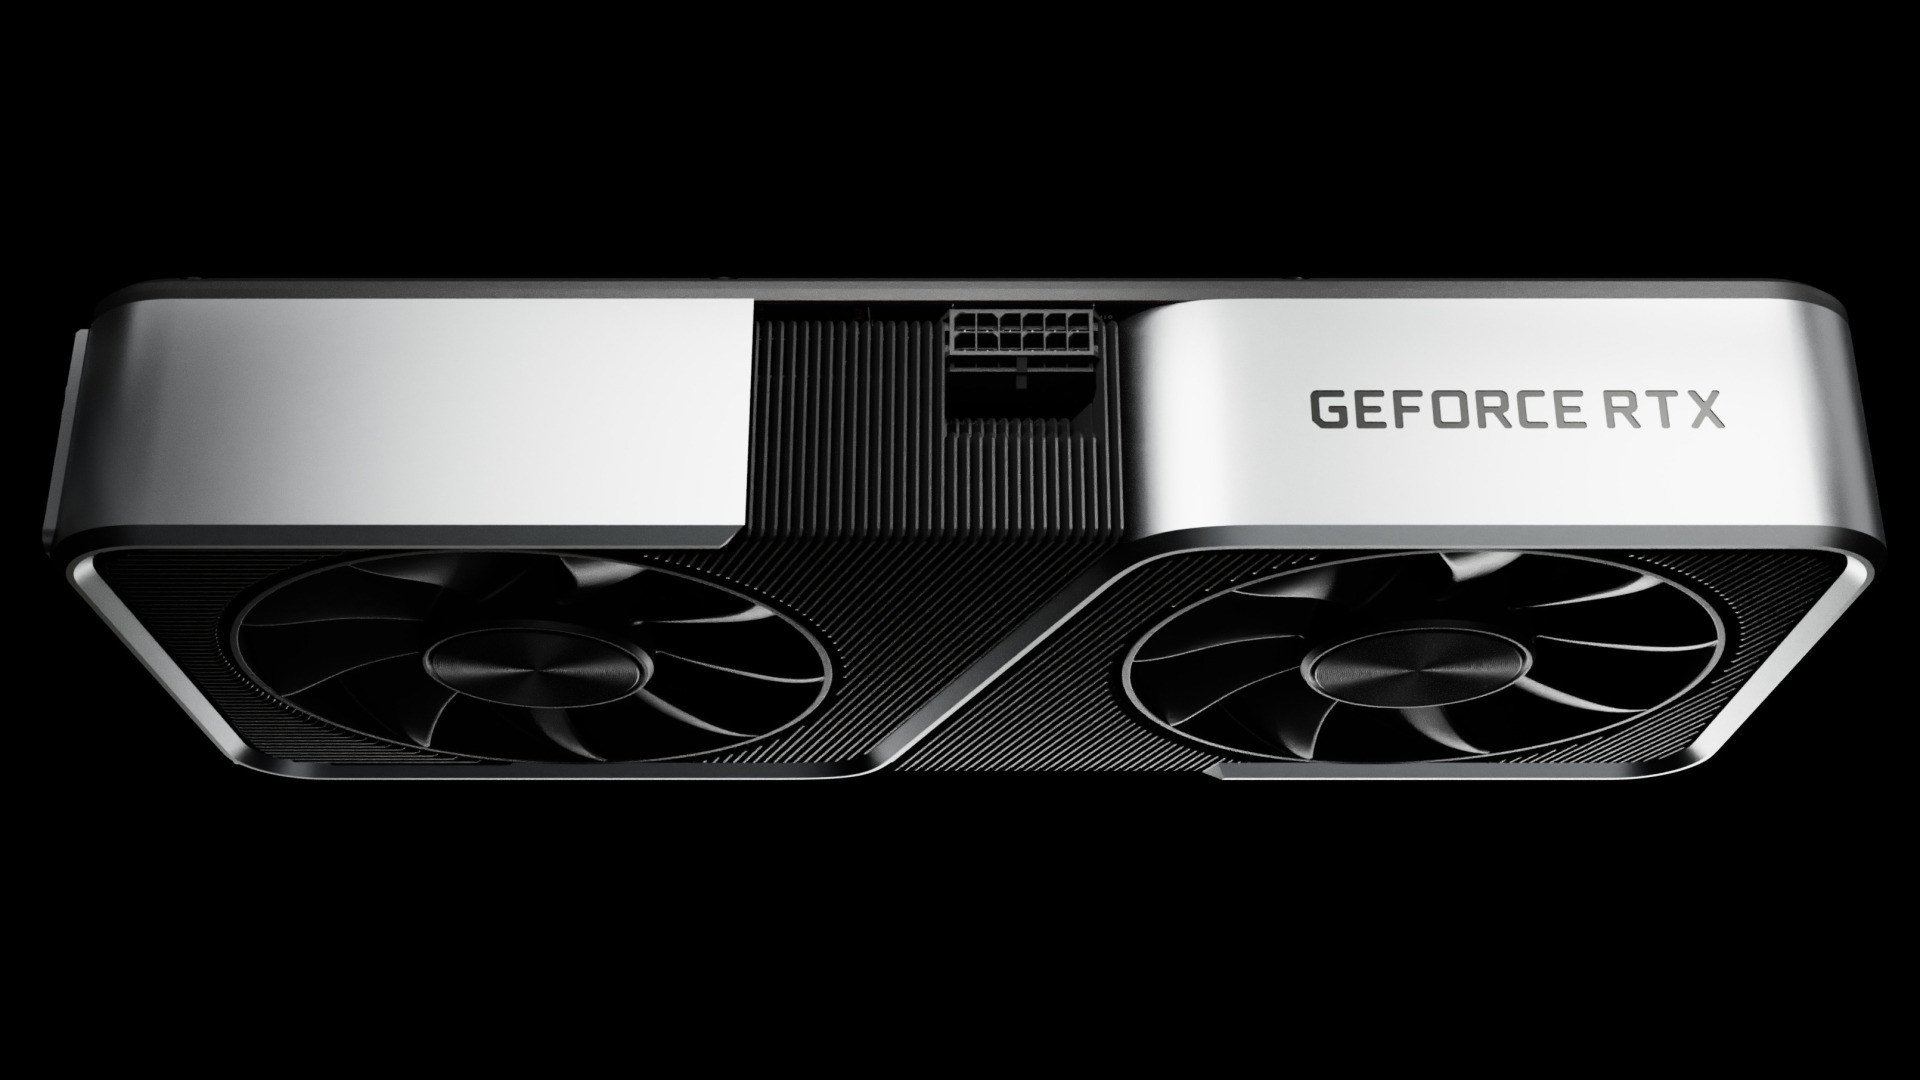 Gaming, Spiele, Pc, Nvidia, Gpu, Grafikkarte, Grafik, Grafikkarten, Geforce, Grafikchip, Nvidia Geforce, Raytracing, Grafikeinheit, Ampere, Nvidia Ampere, GeForce RTX 3060 Ti, Nvidia GeForce RTX 3060 Ti